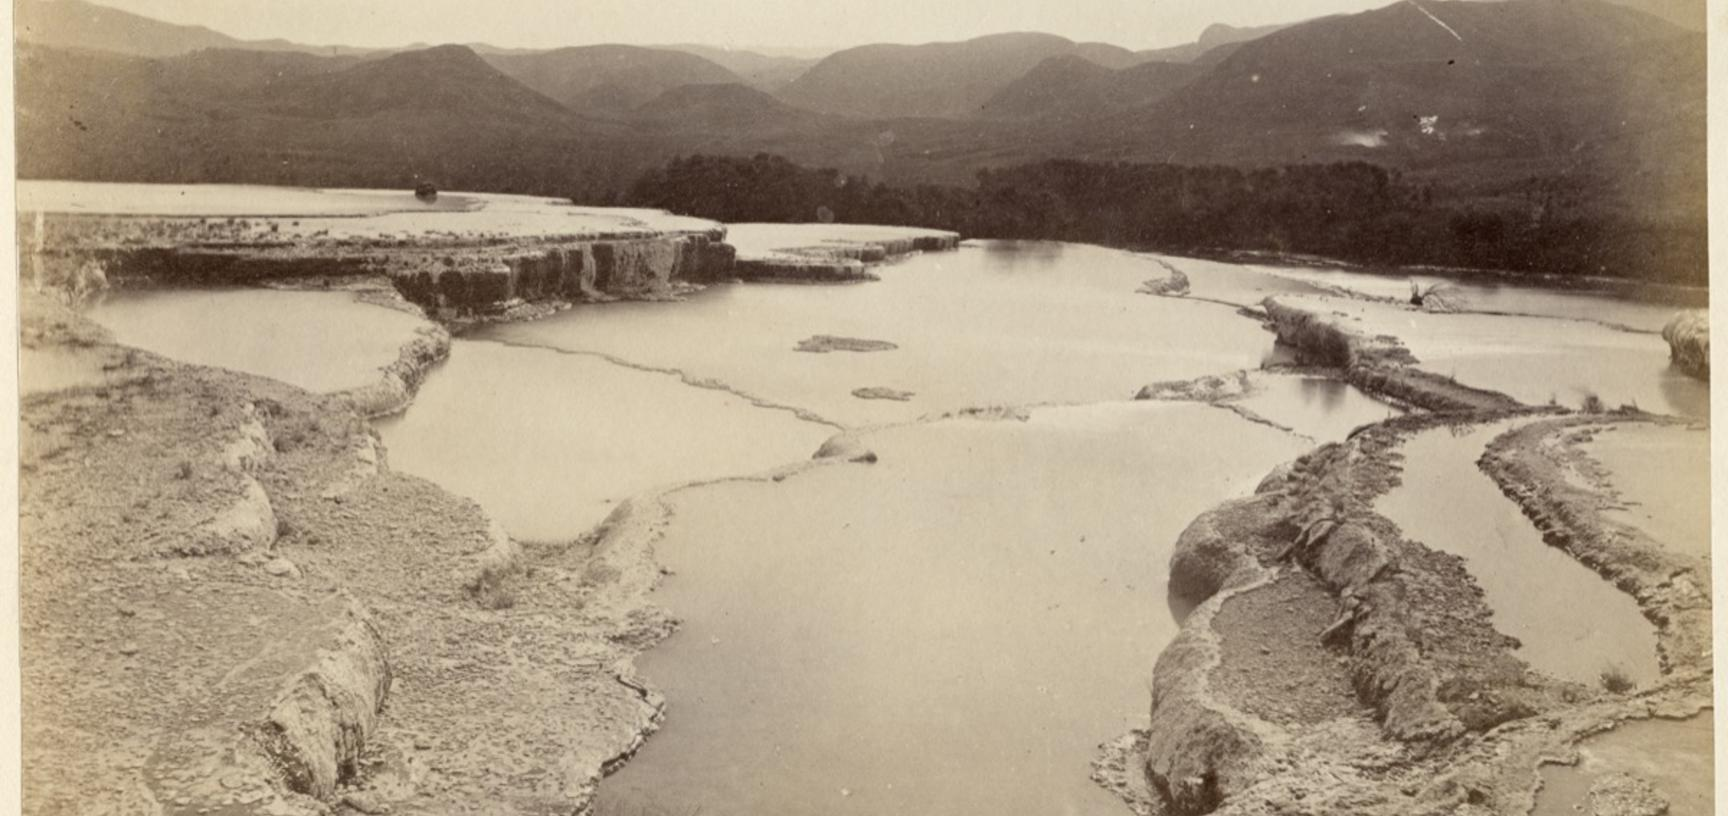 View of the geological structure known as the 'White Terraces', a popular tourist attraction located at the edge of Lake Rotomahana, near Rotorua. Photograph by Alfred Burton for the Burton Brothers studio (Dunedin). Lake Rotomahana, North Island, New Zea